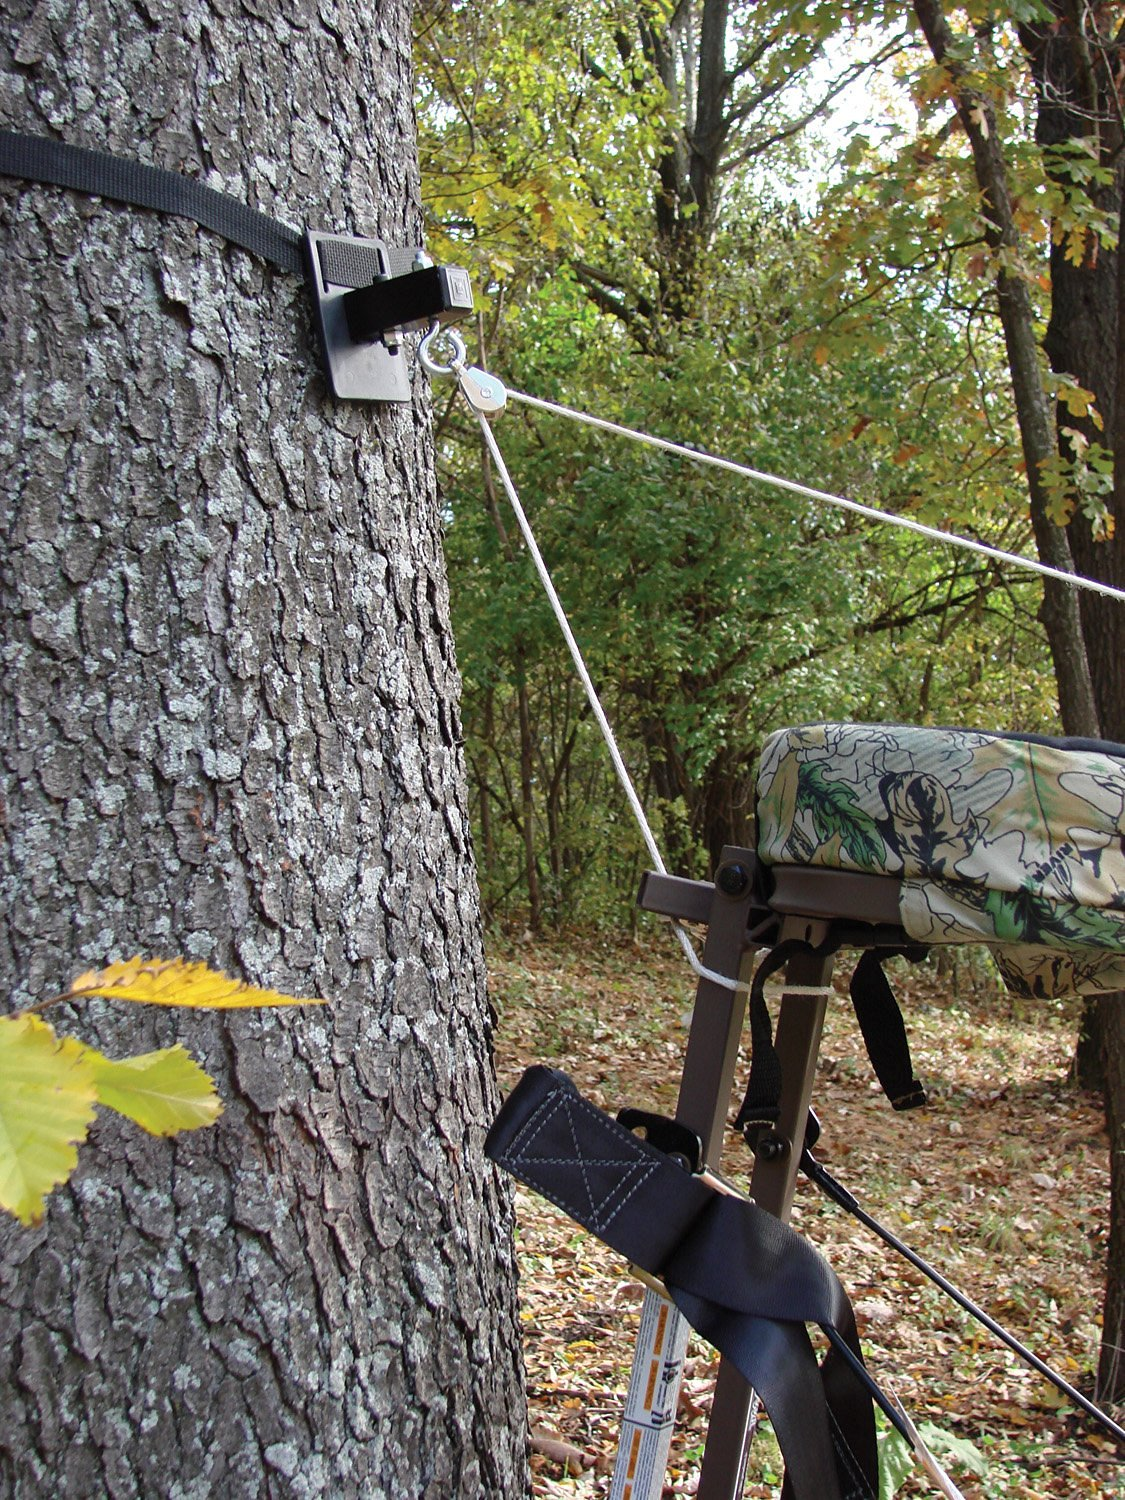 Pine Ridge Archery E/Z Up Tree Stand Pulley System